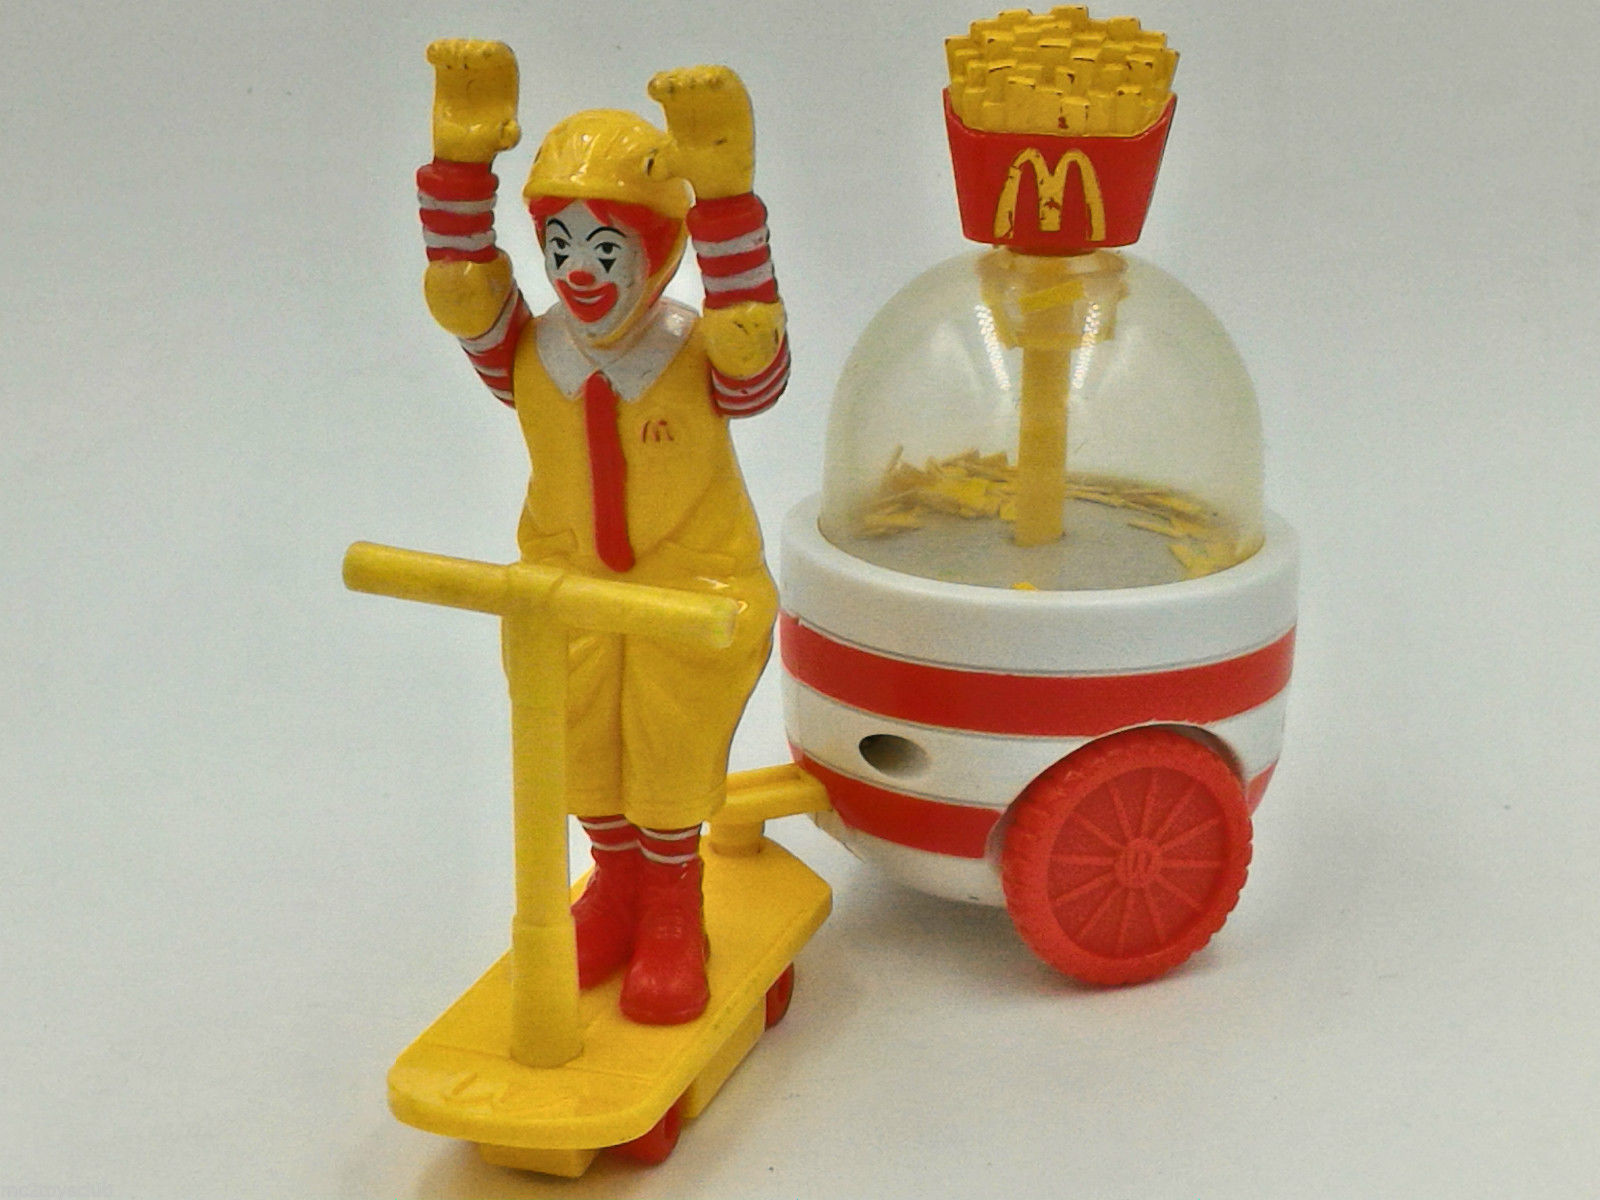 Parappapapa, I'm lovin' it! Be it Happy Meals, the morning breakfasts, signature classic Angus cheeseburgers or even the buttermilk crispy chicken burgers.